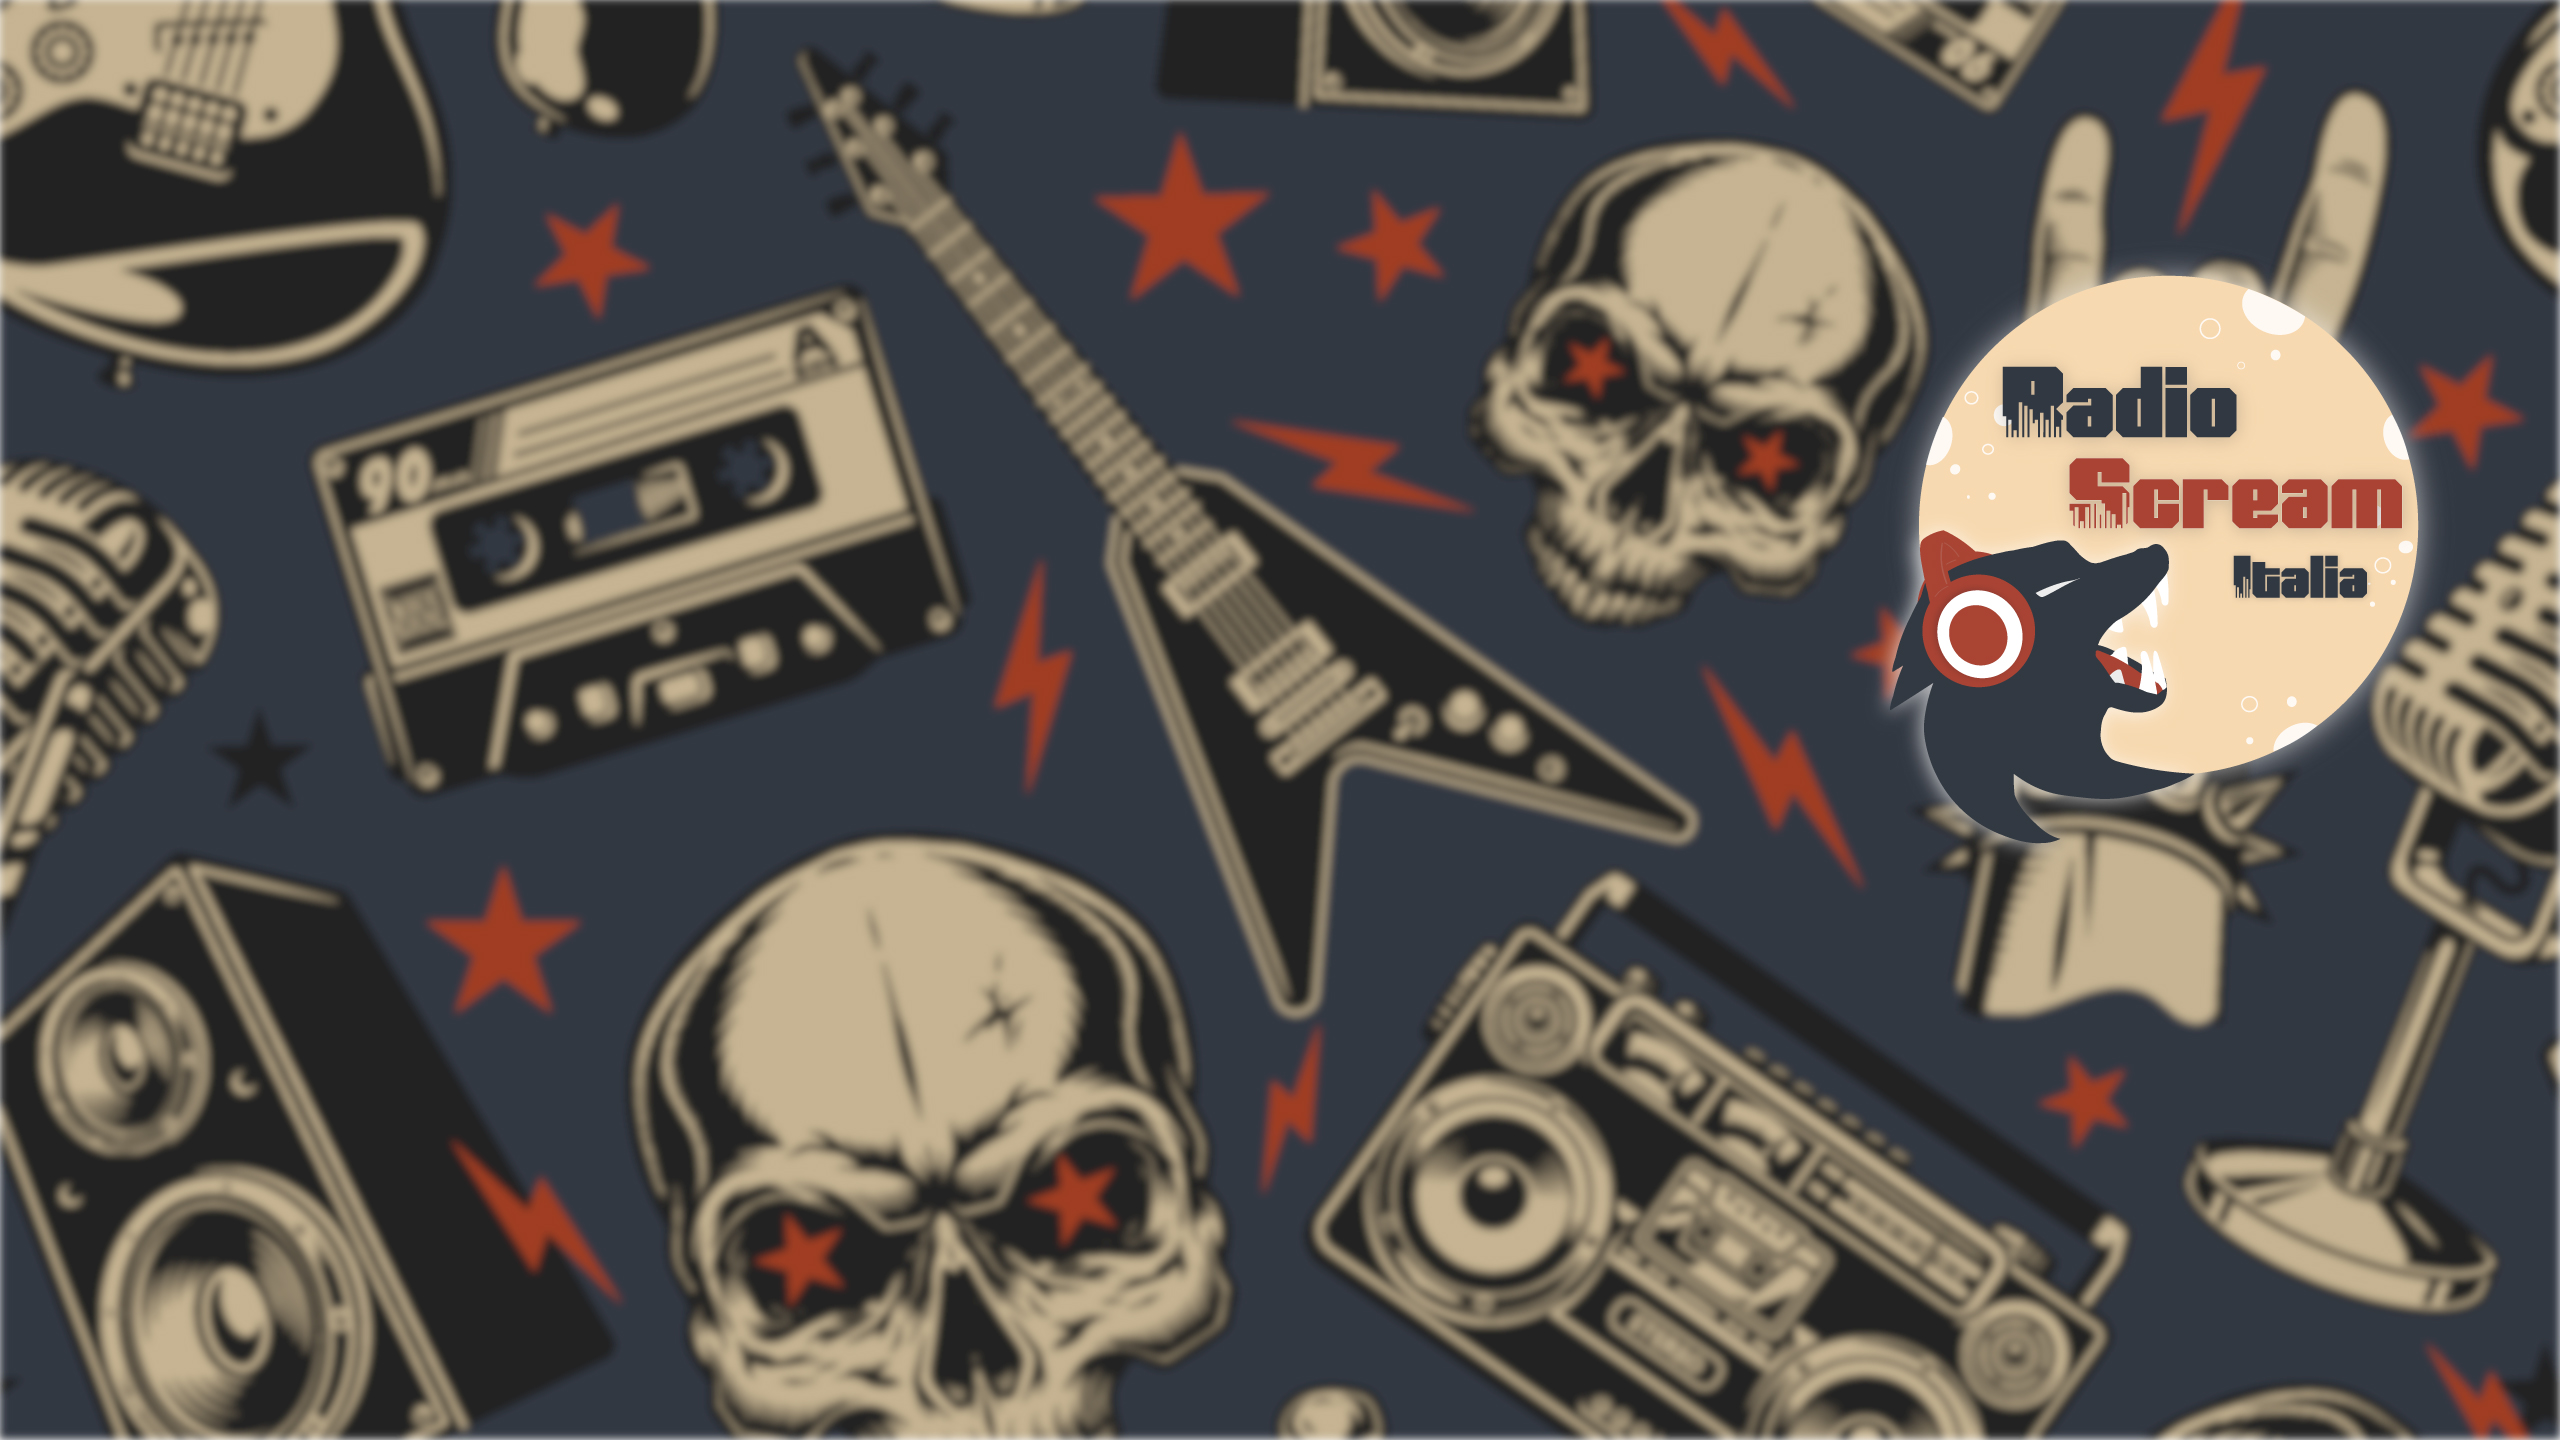 Radioscream-Banner-Slider-HP-Rock-Playlist